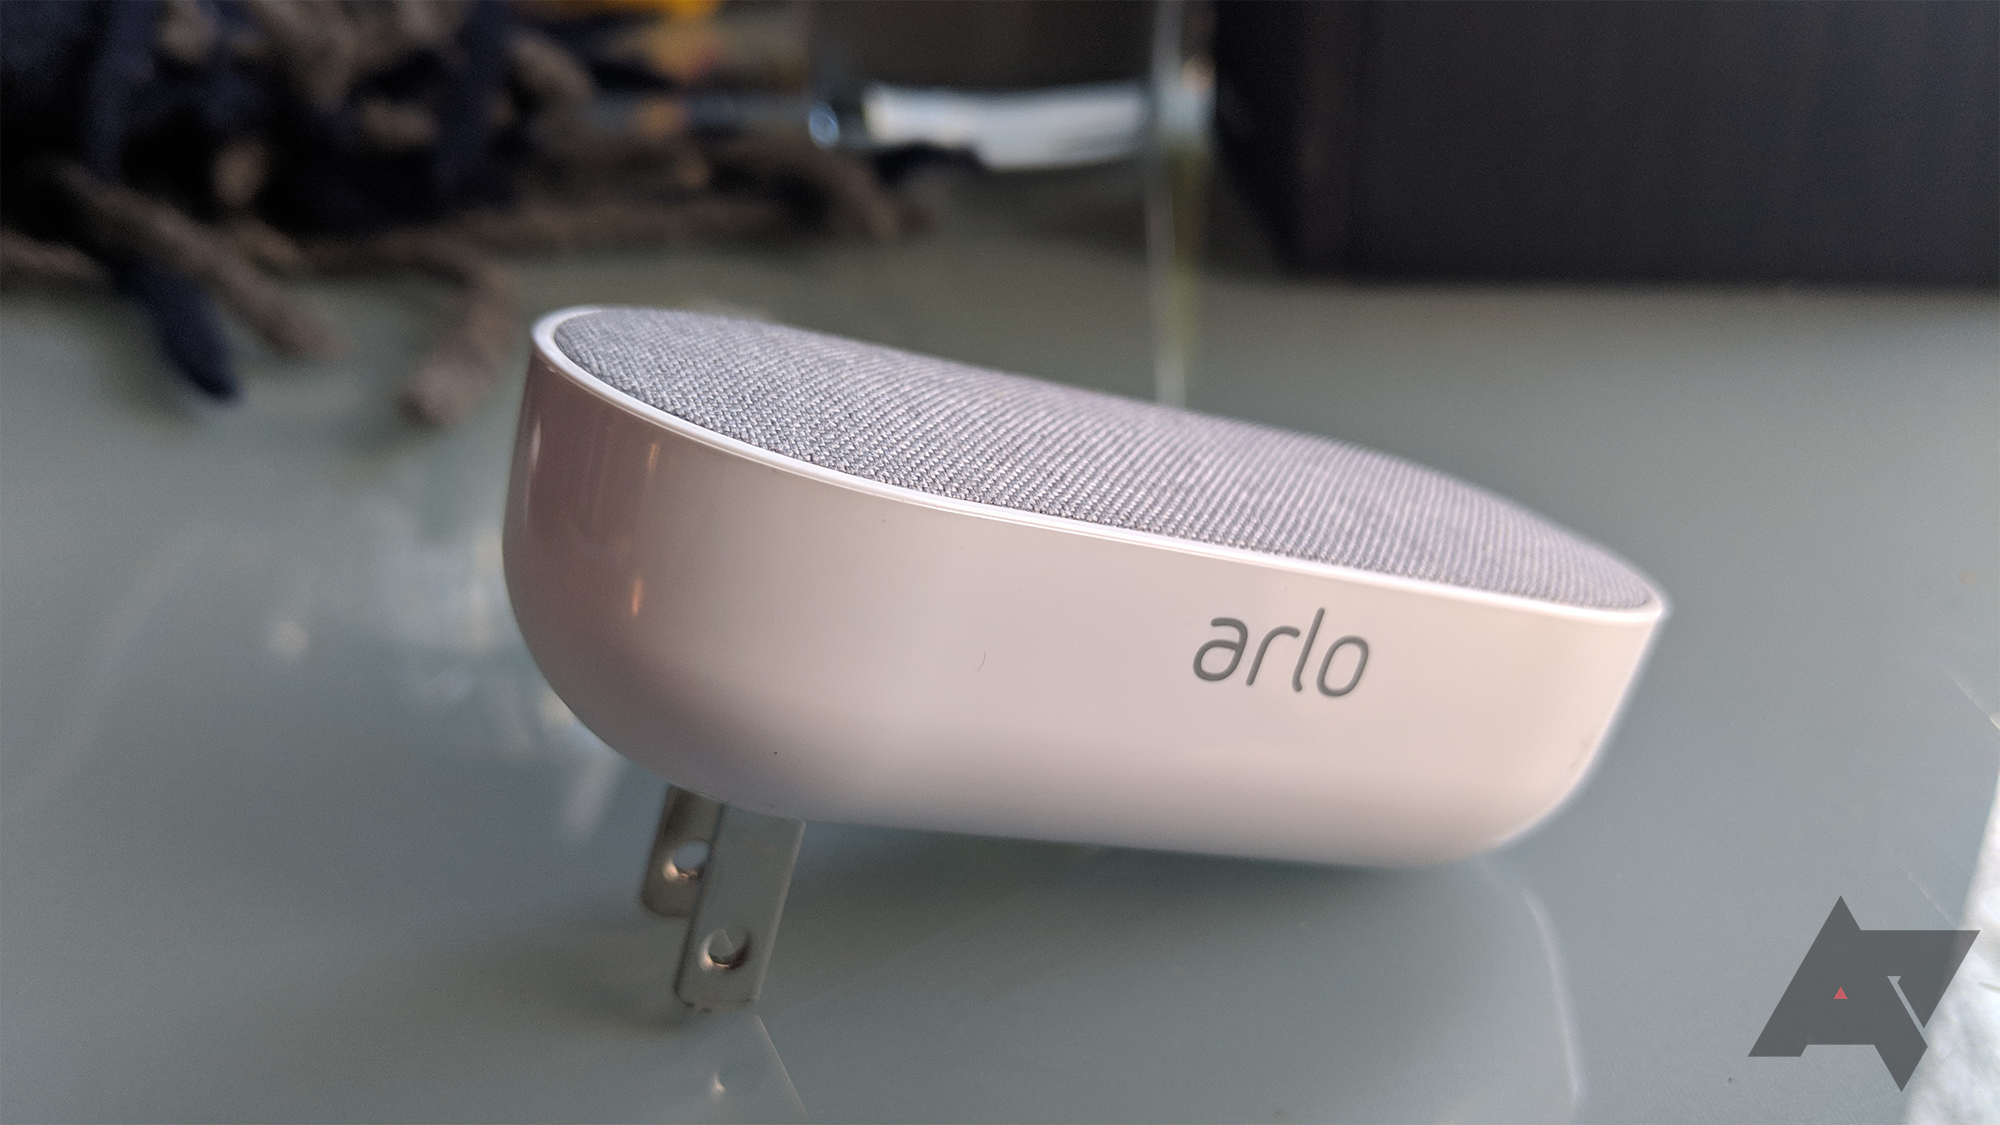 Arlo Audio Doorbell and Chime review: Easy setup